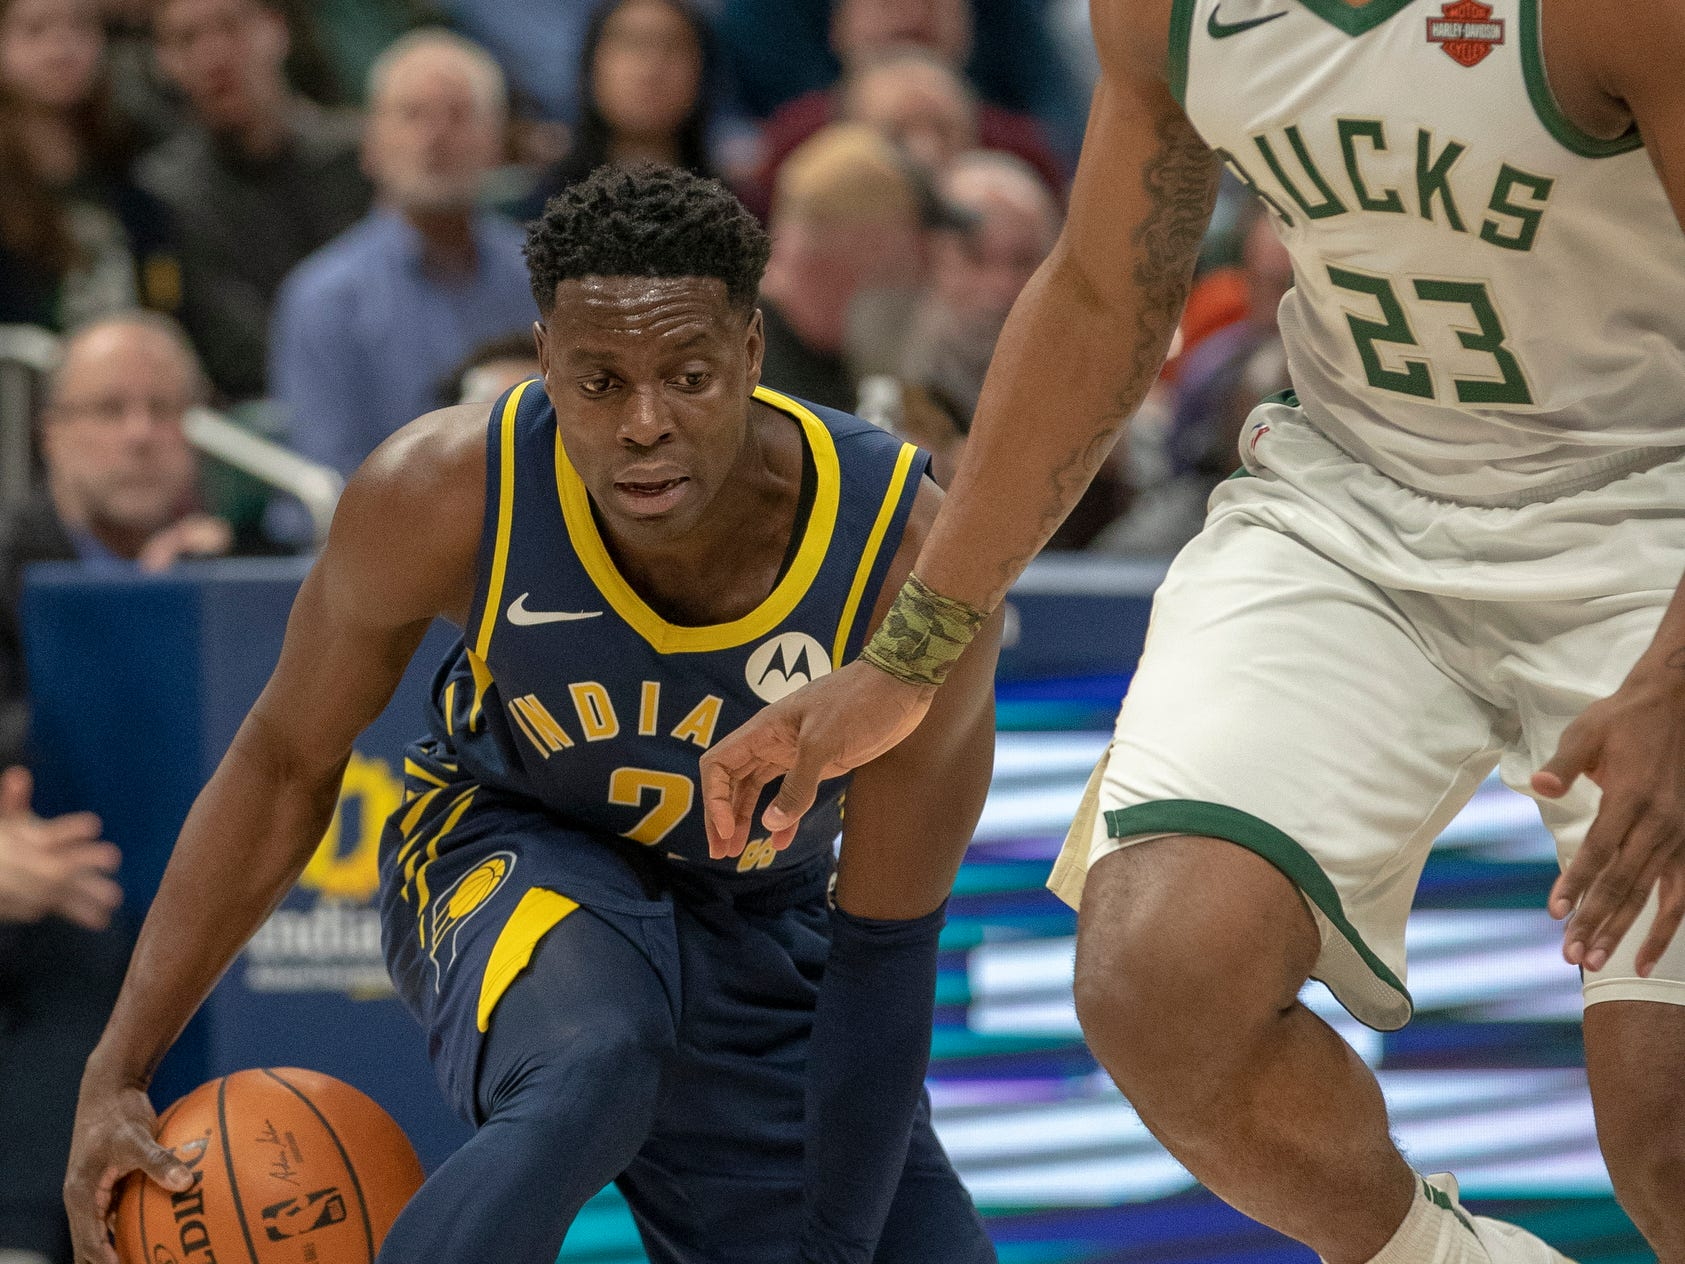 Darren Collison of the Indiana Pacers fakes out Sterling Brown of the Milwaukee Bucks during second quarter action, Bankers Life Fieldhouse, Indianapolis, Wednesday, Feb. 13, 2019. Milwaukee won 106-97.